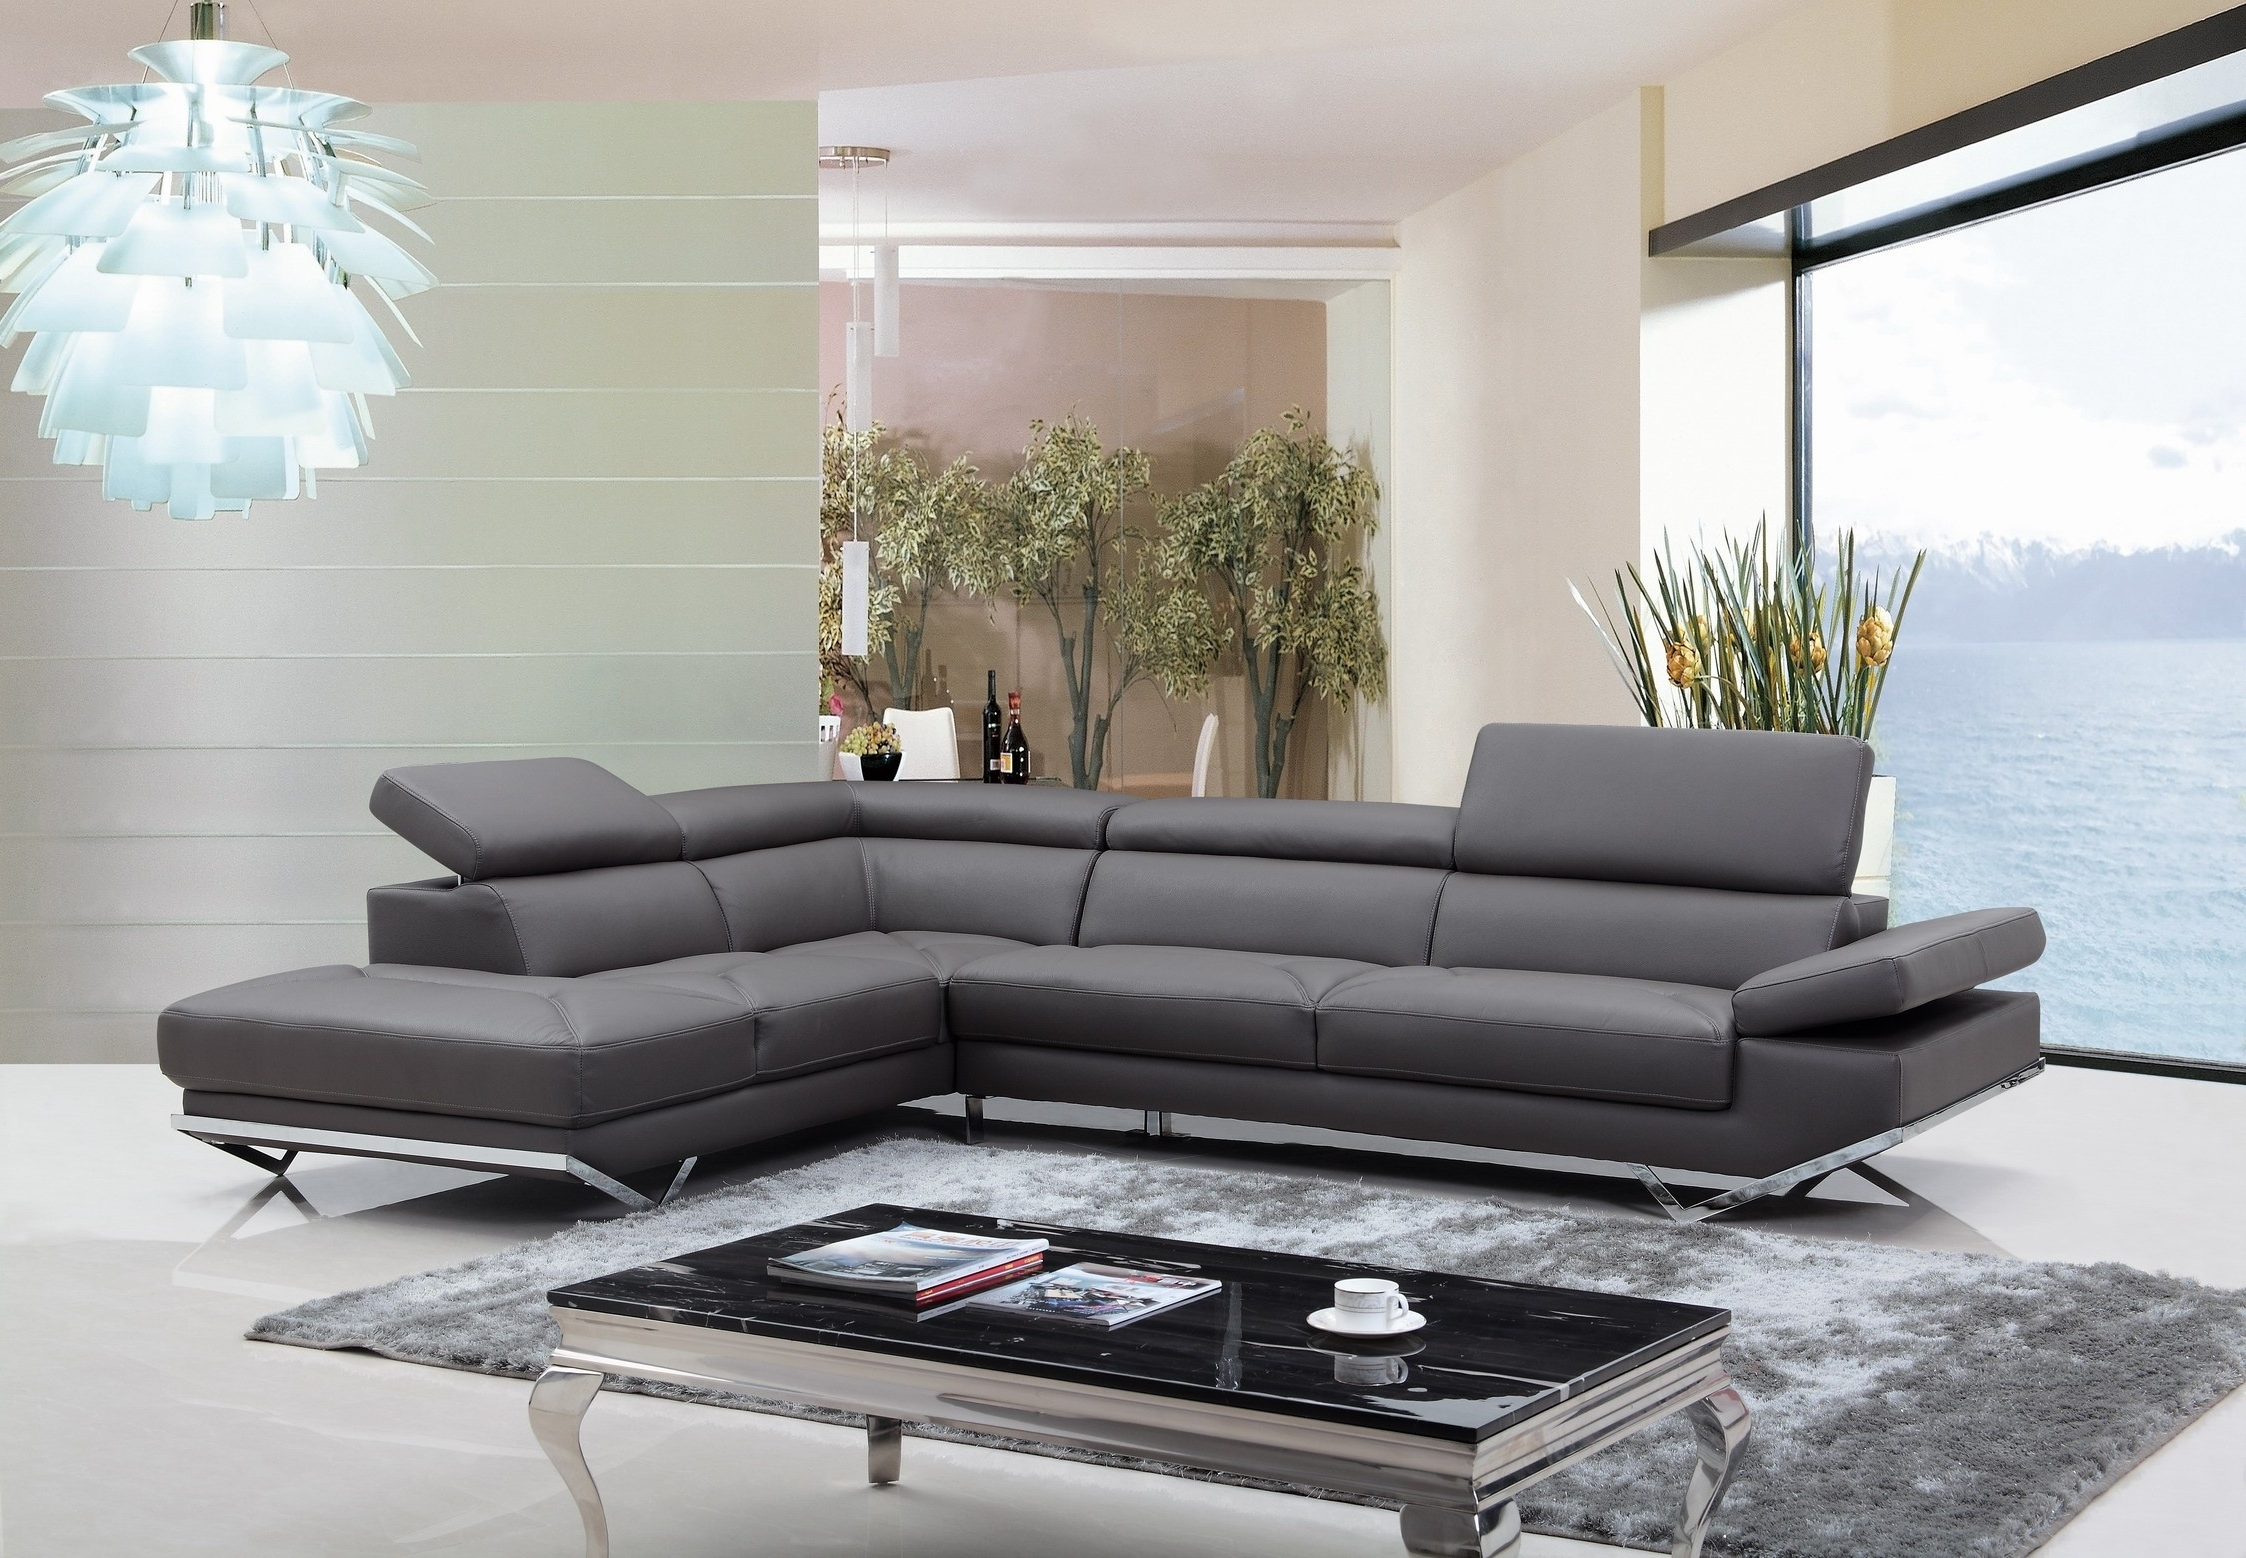 Sofa Modernr Ideas For Living Room Hupehome Contemporary Furniture In Current High Point Nc Sectional Sofas (View 4 of 15)